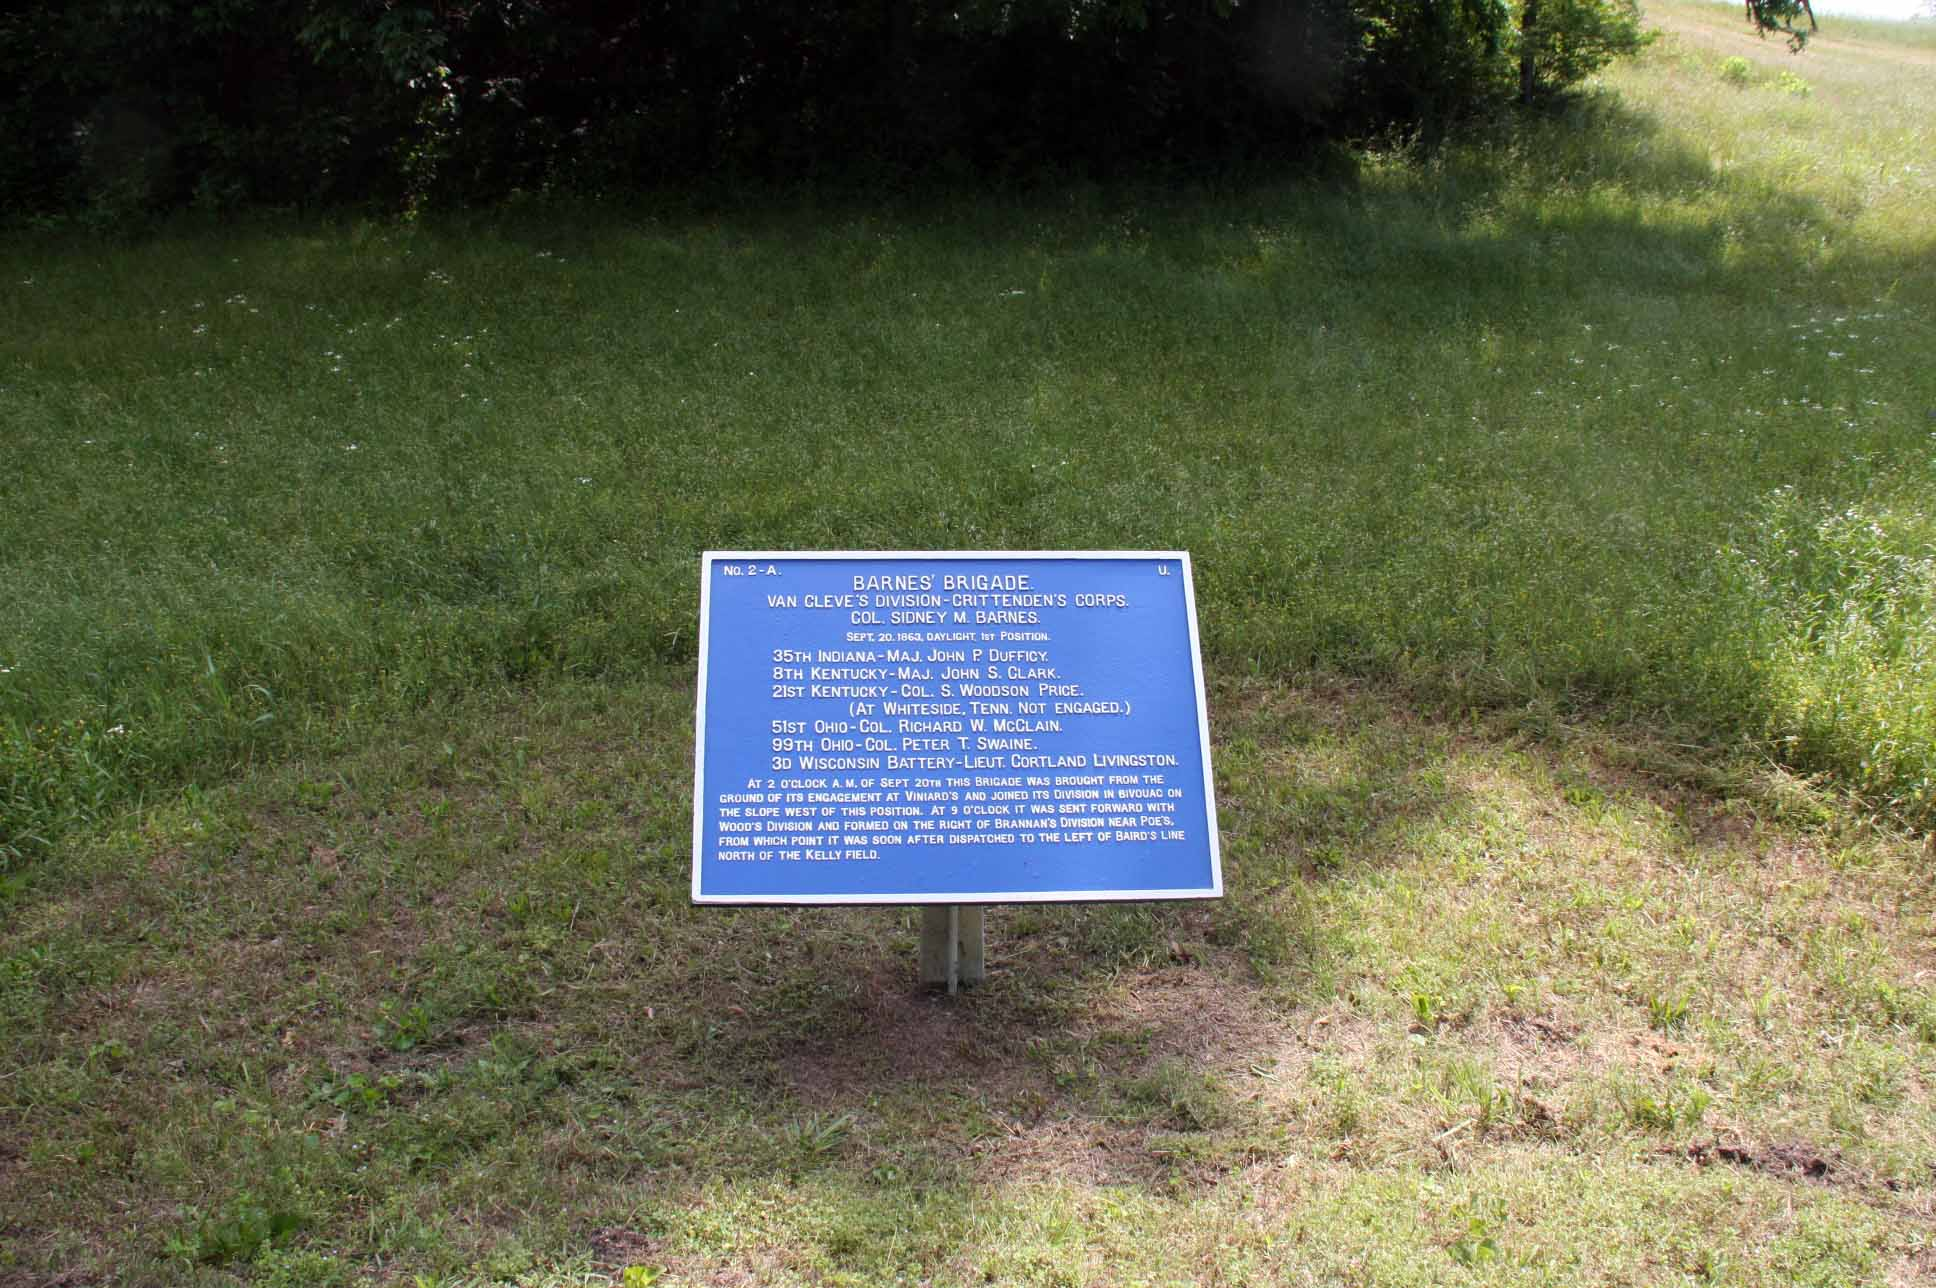 Barnes' Brigade Tablet, click photo to enlarge.